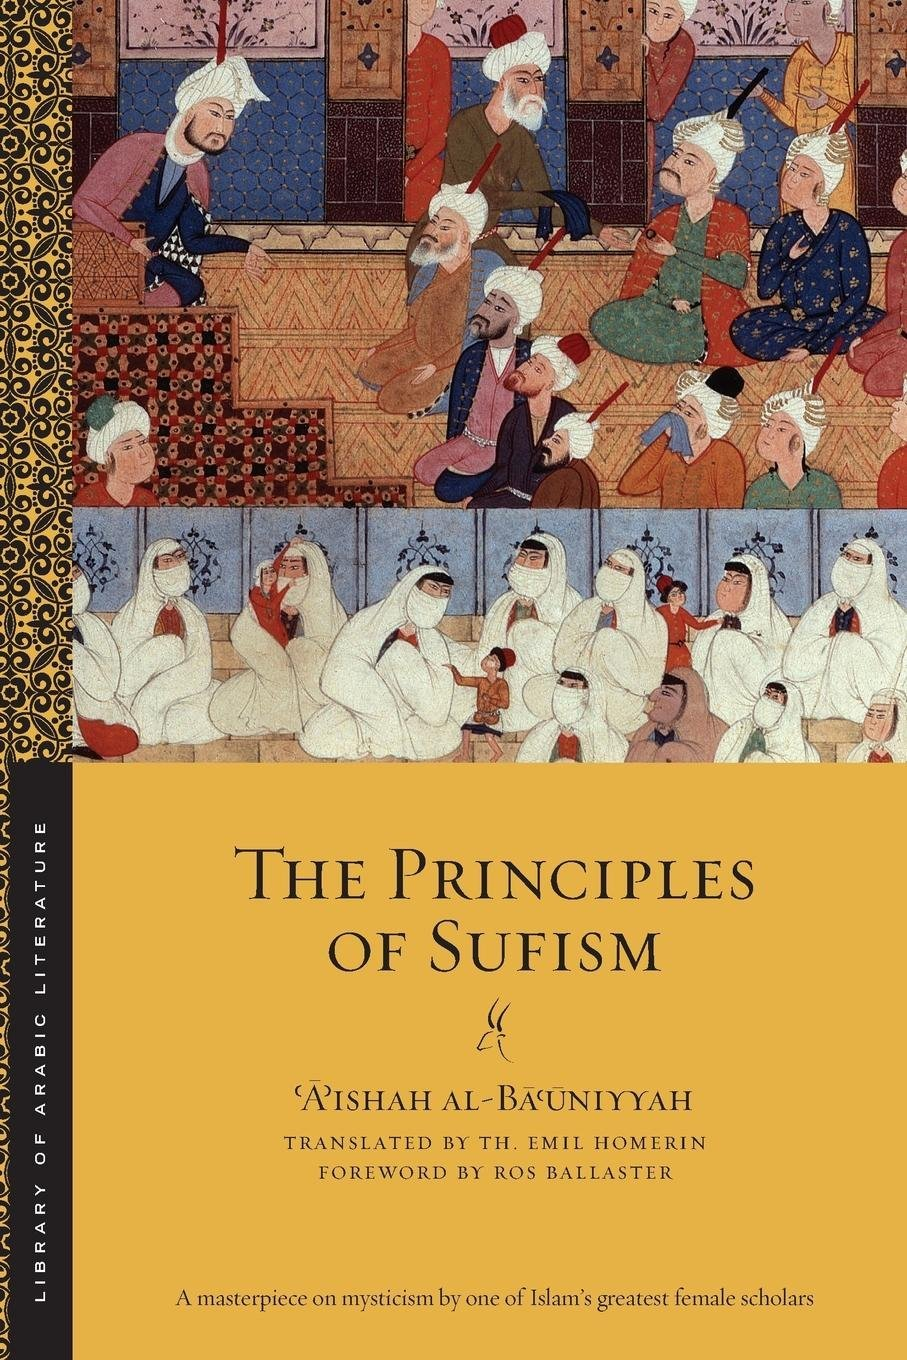 Download The Principles of Sufism (Library of Arabic Literature) ebook